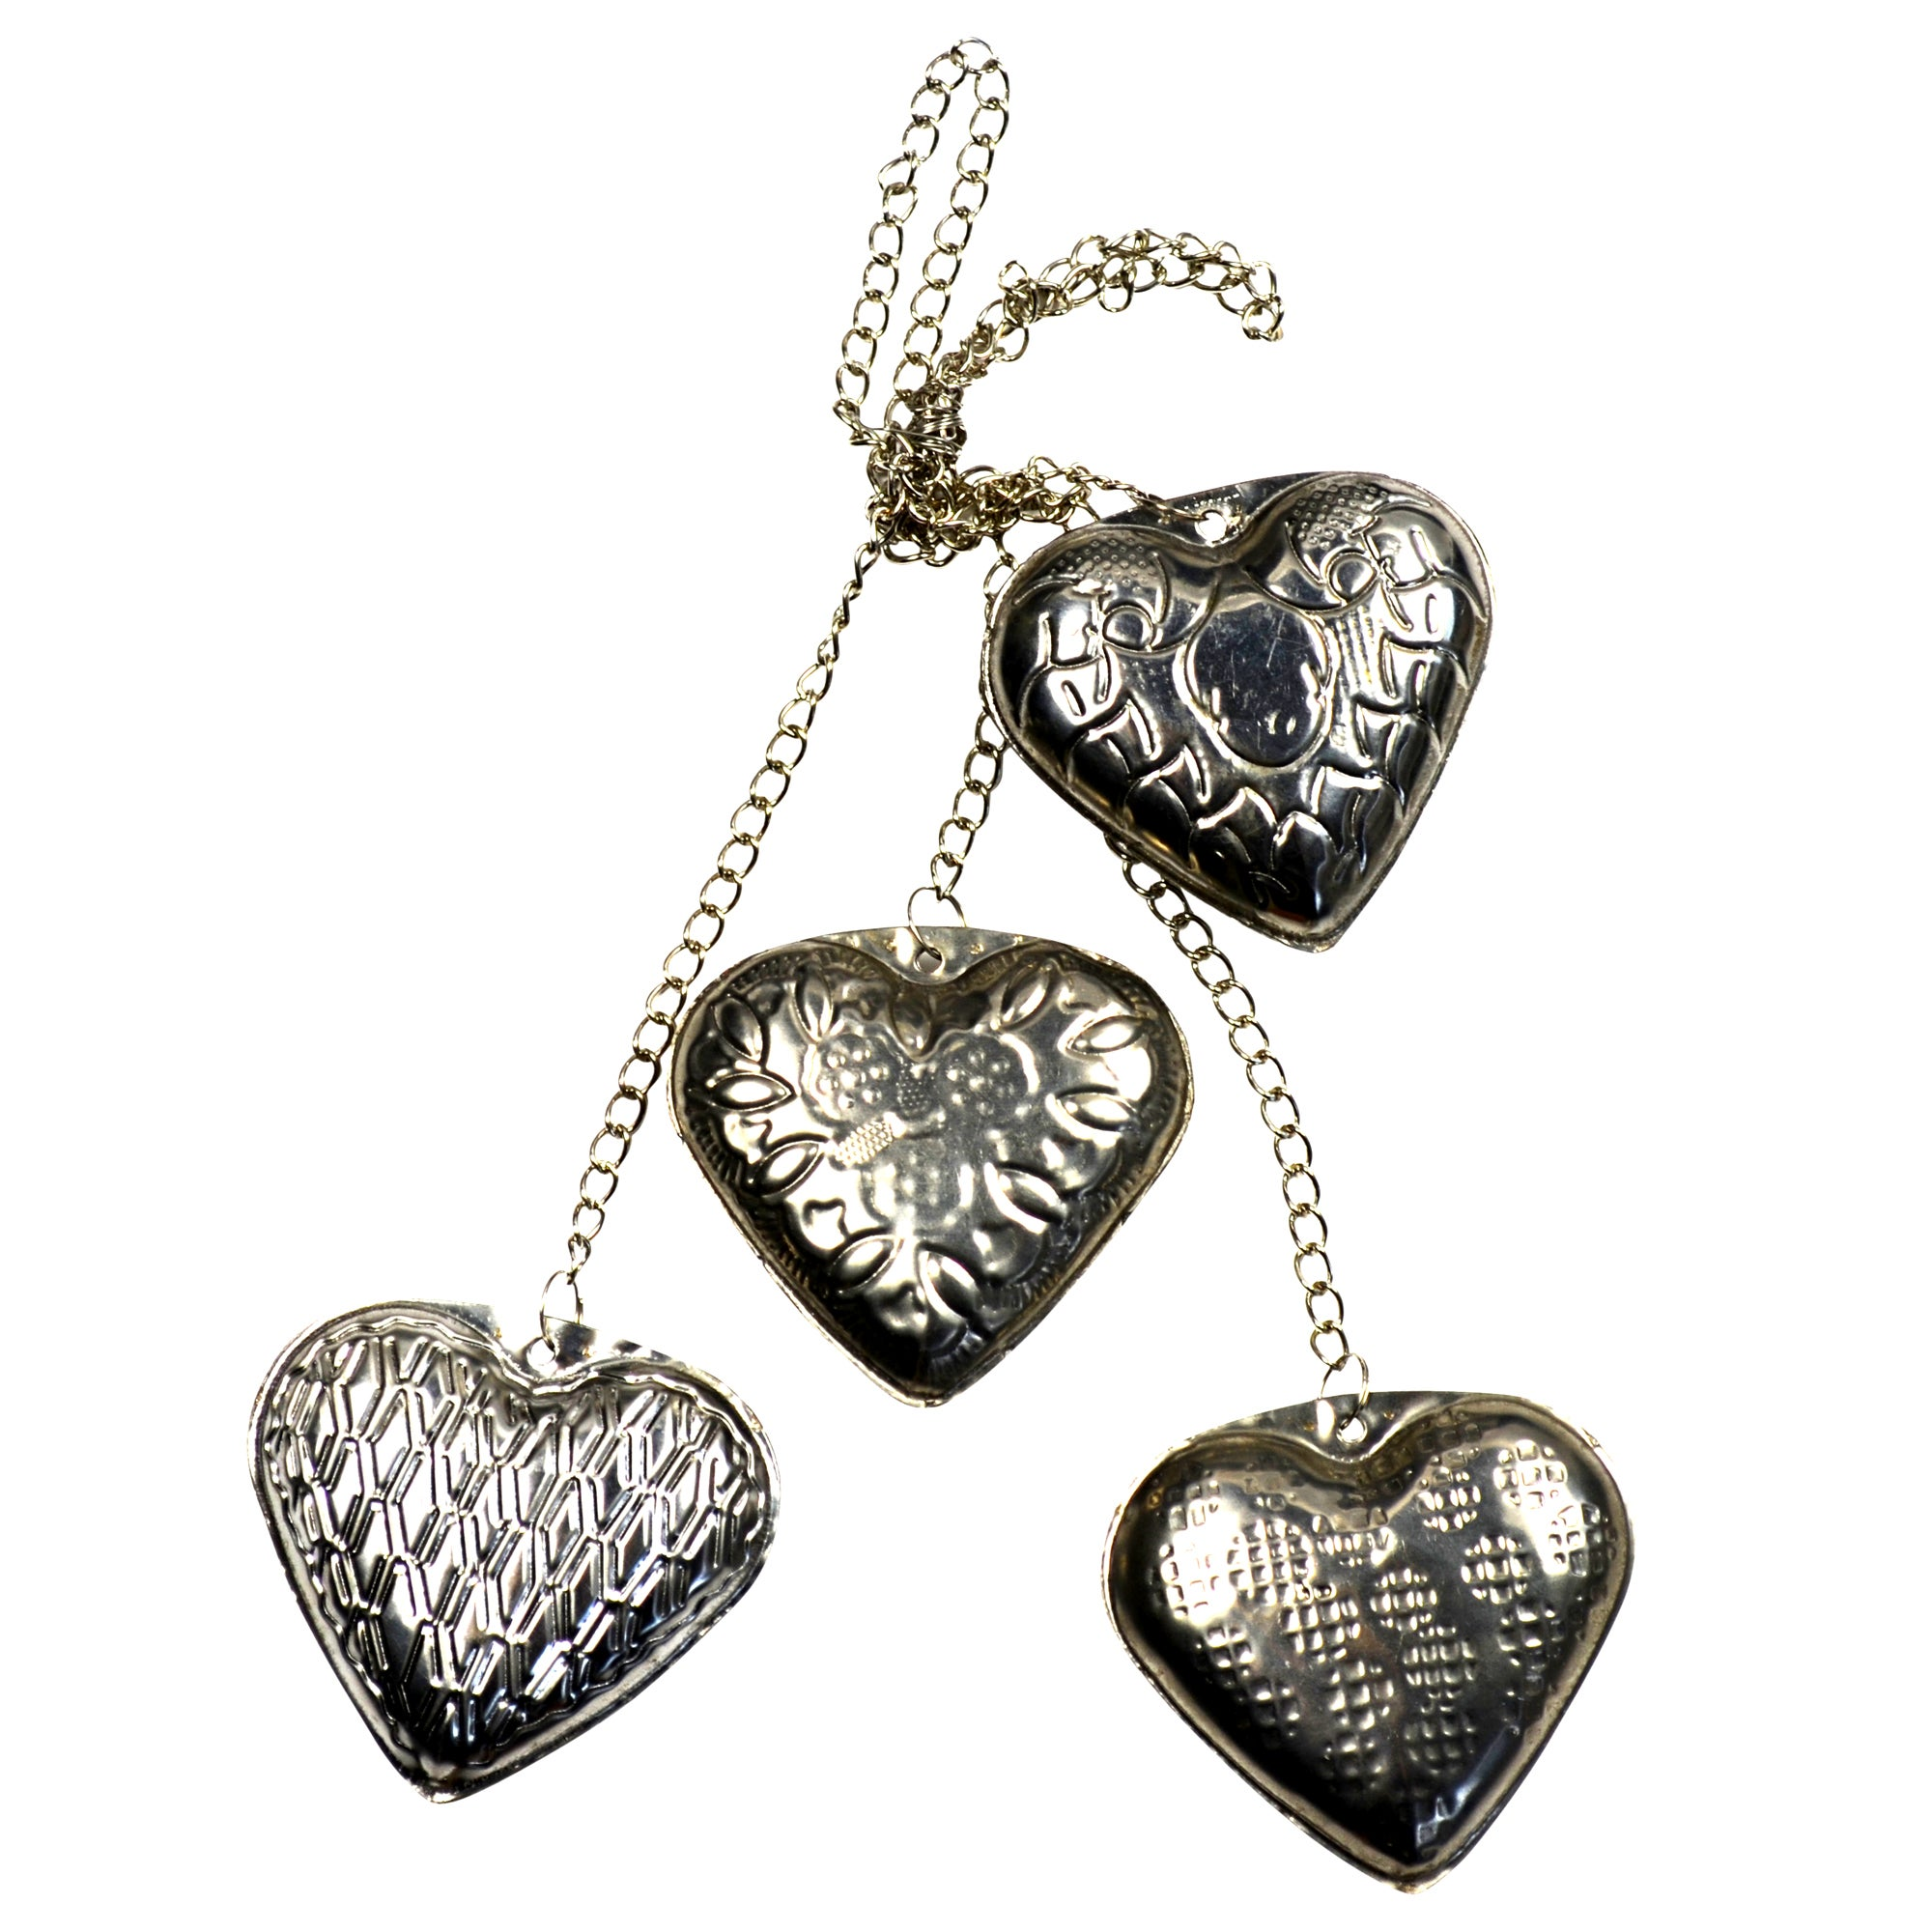 Burnt Sienna Collection Metal Hearts Chain